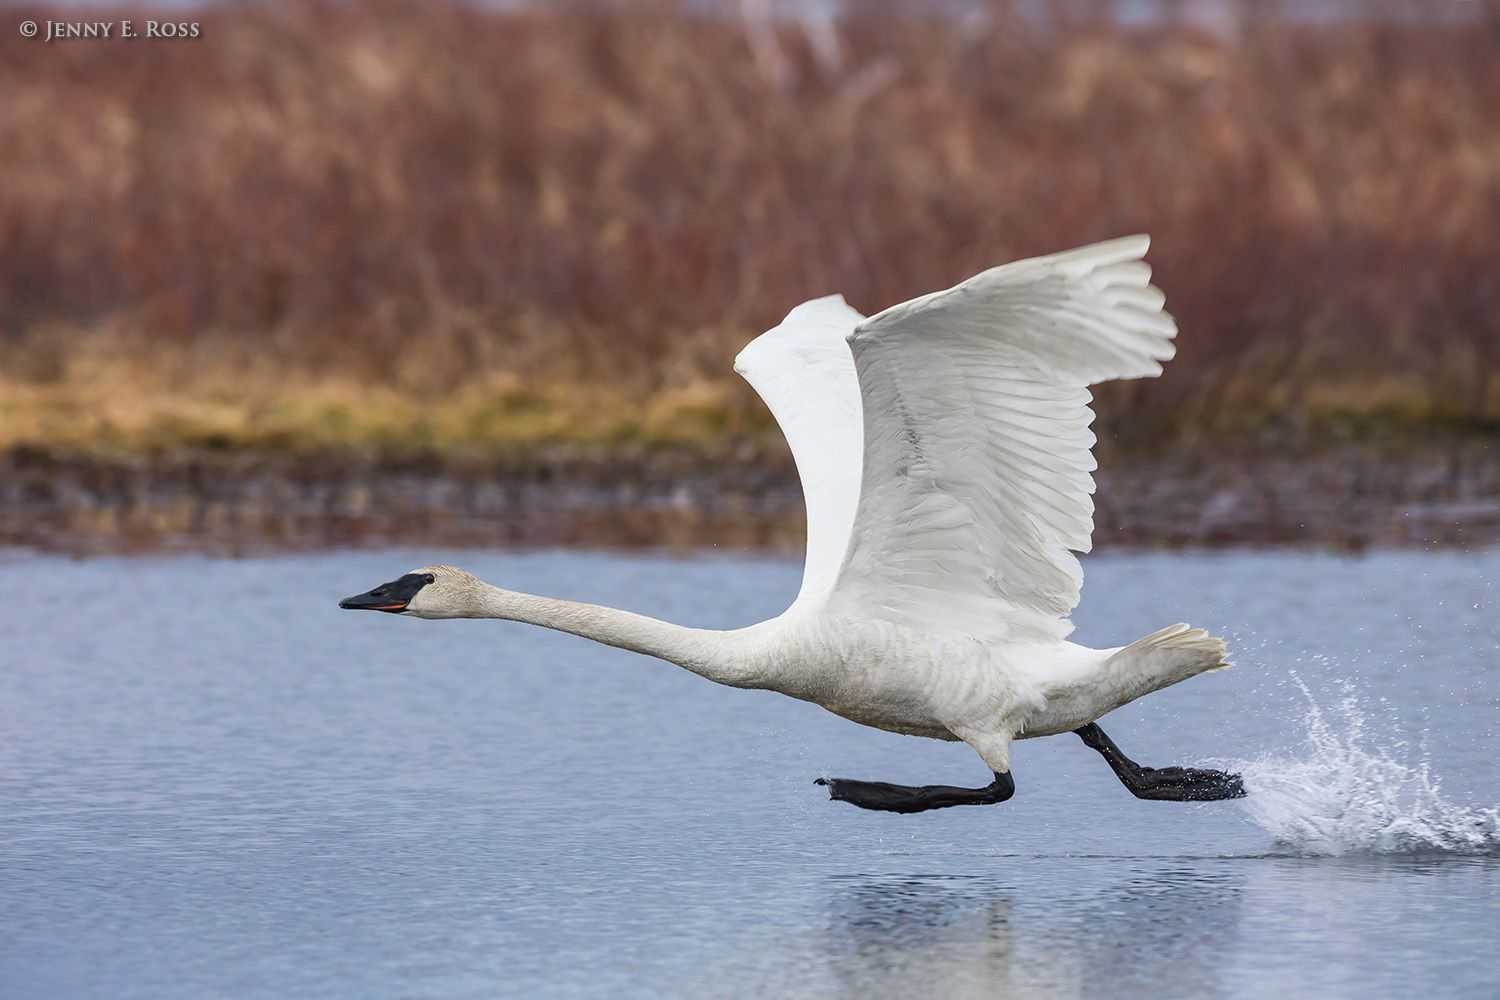 An adult Trumpeter Swan (Cygnus buccinator) runs across the water before lifting into flight in the Copper River Delta.